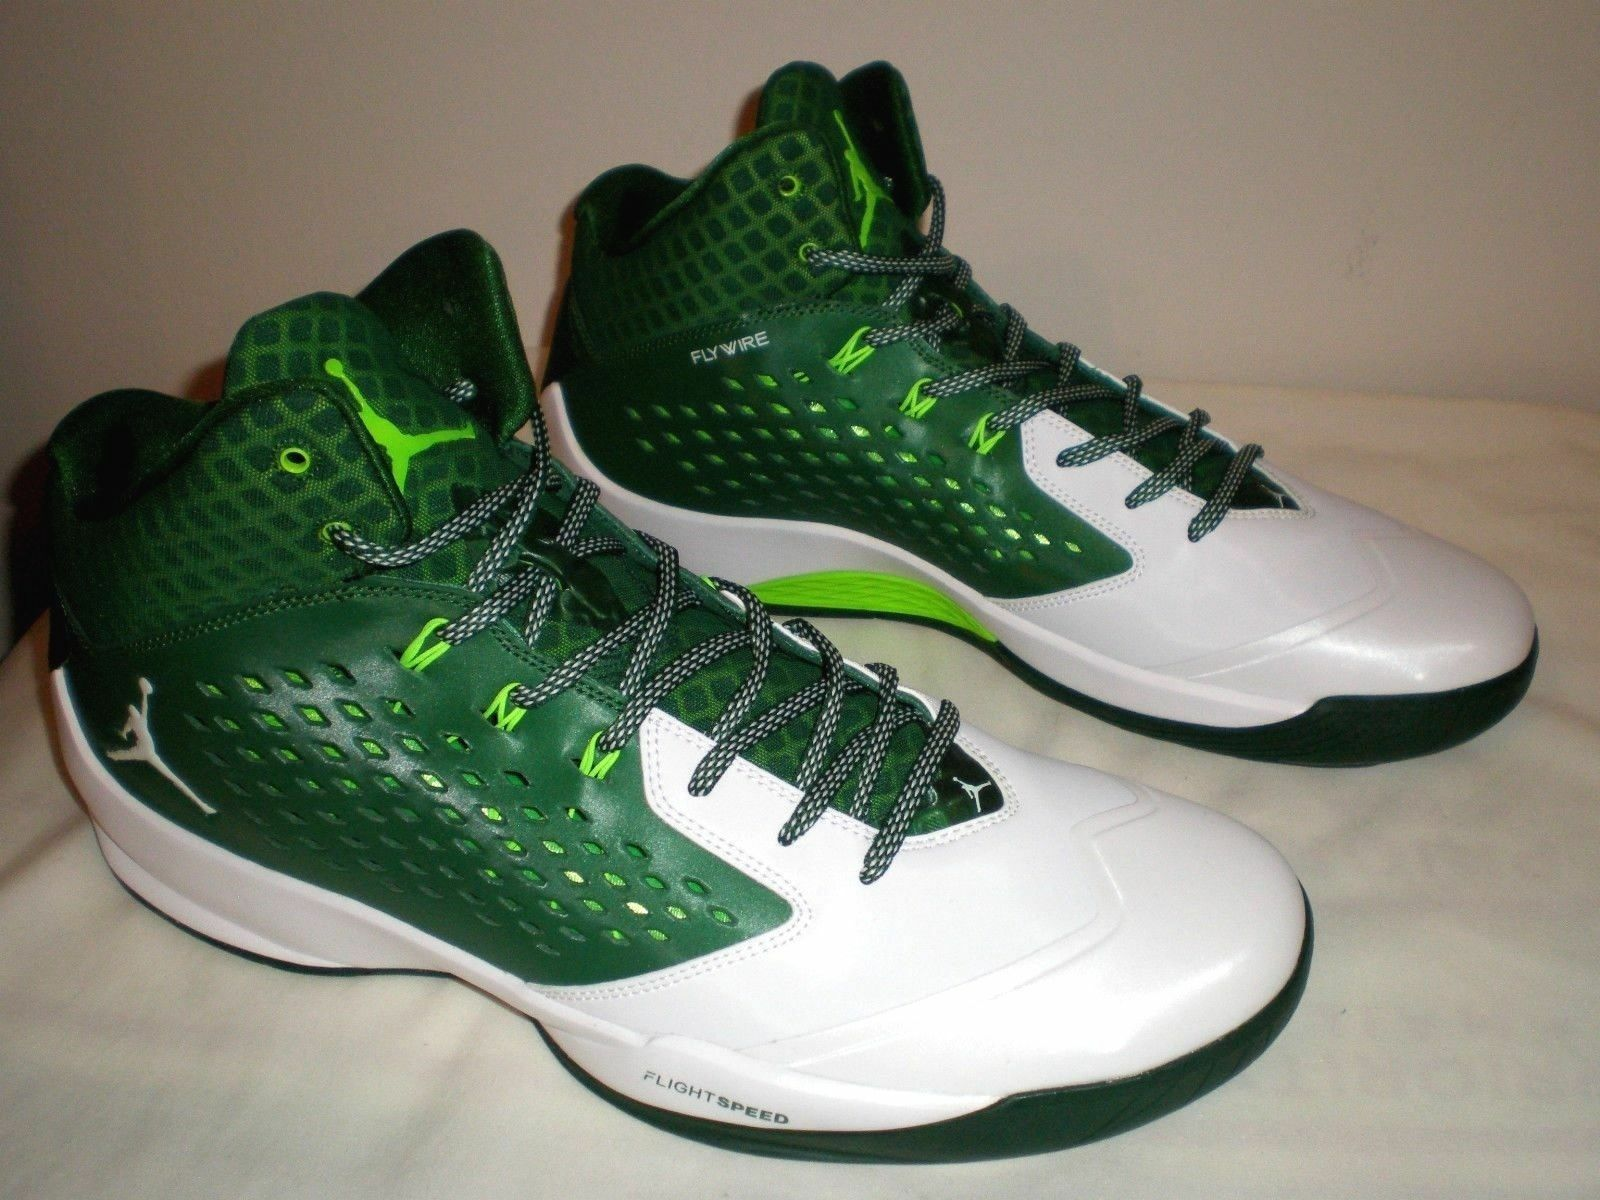 The most popular shoes for men and women Mens NIKE JORDAN Rising High Basketball Shoe 768931 323 GREEN WHITE Sz 13.5